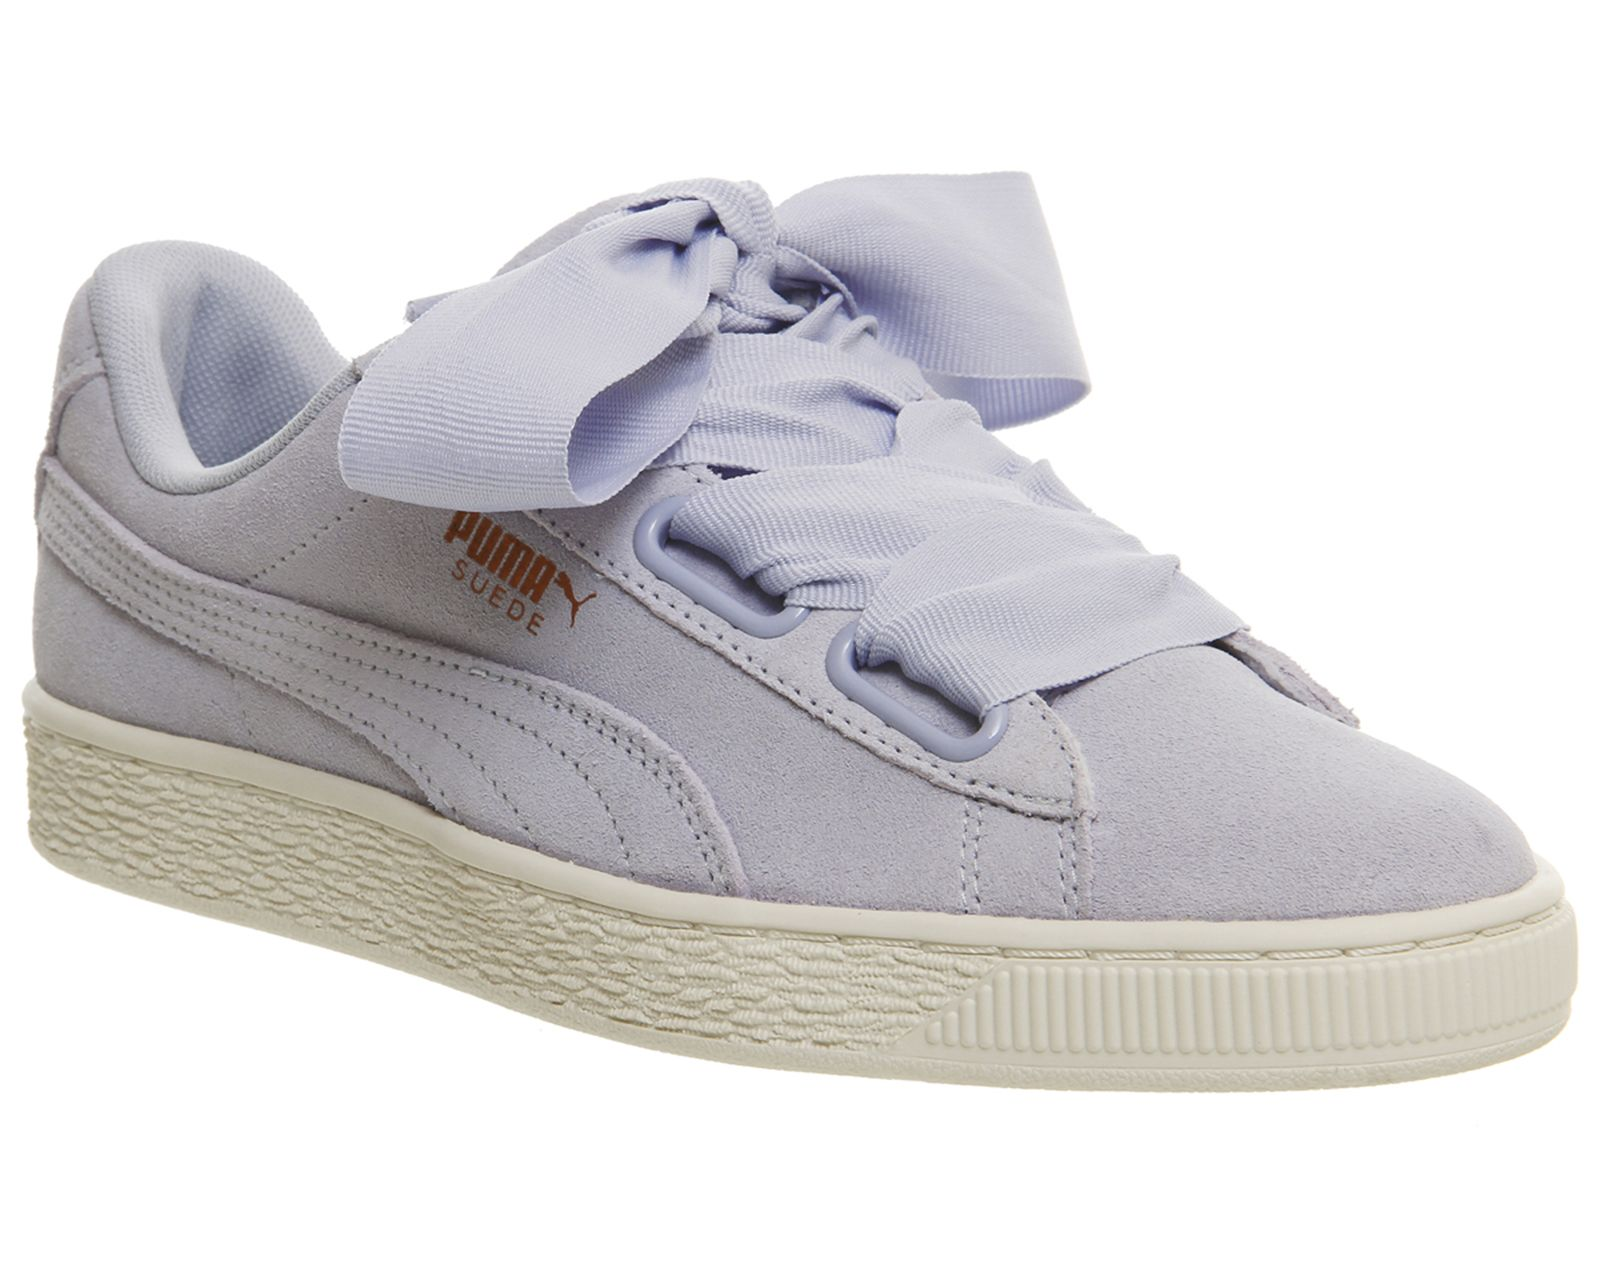 separation shoes 71f93 87416 Suede Heart Trainers | My Style | Puma suede, Puma sneakers ...